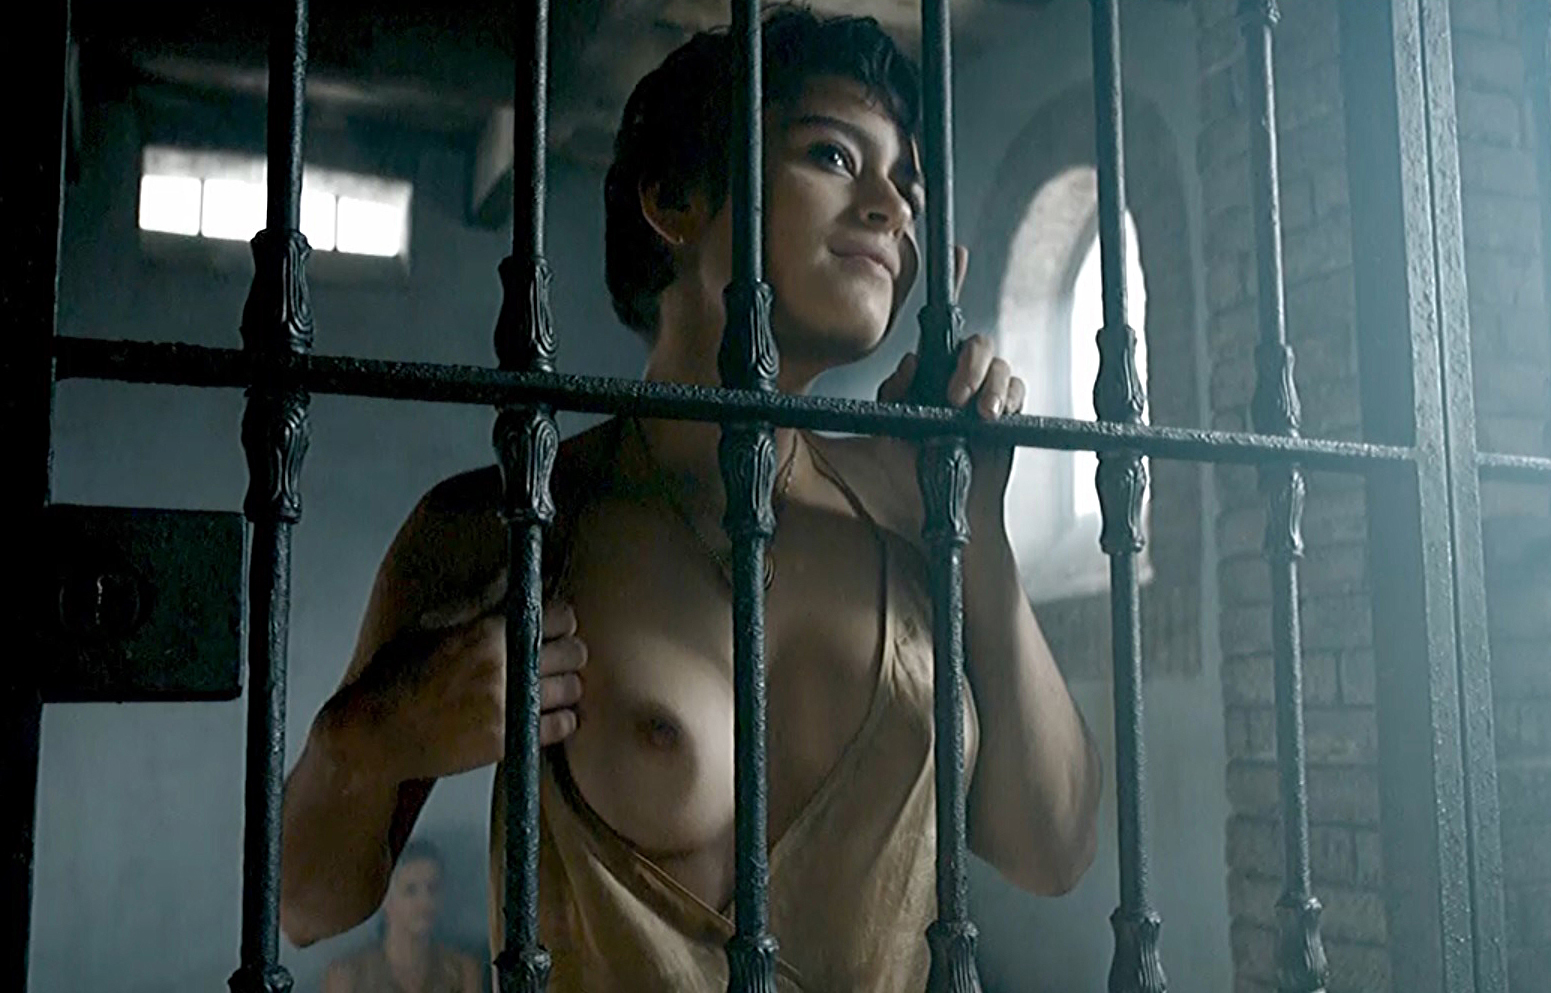 Rosabell Laurenti Sellers Nude Boobs In Game Of Thrones ...